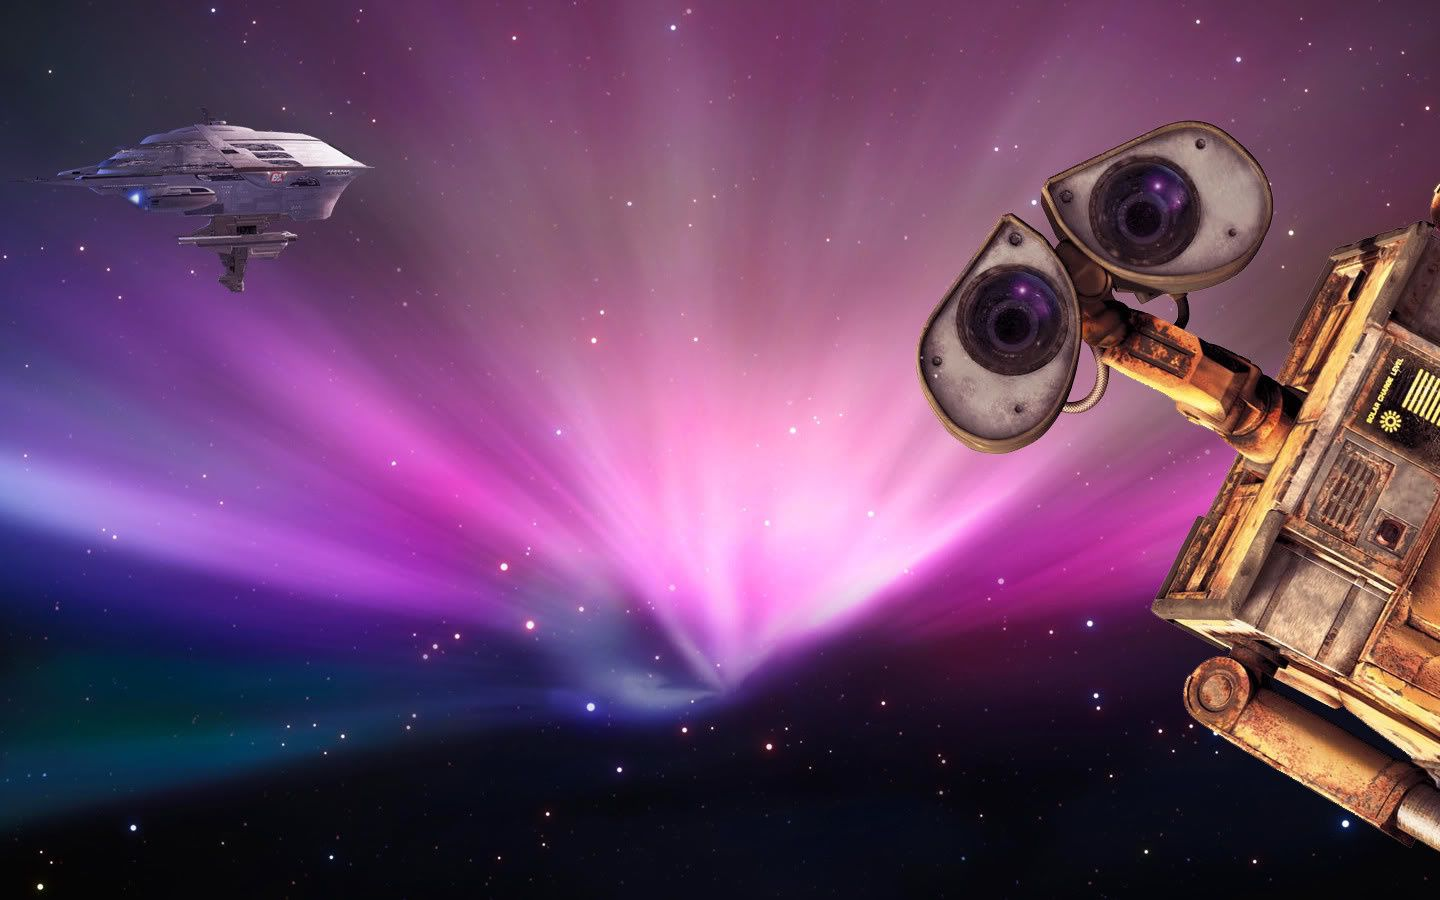 Wallpaper fond d 39 cran disney wall e le blog de for D wall wallpaper